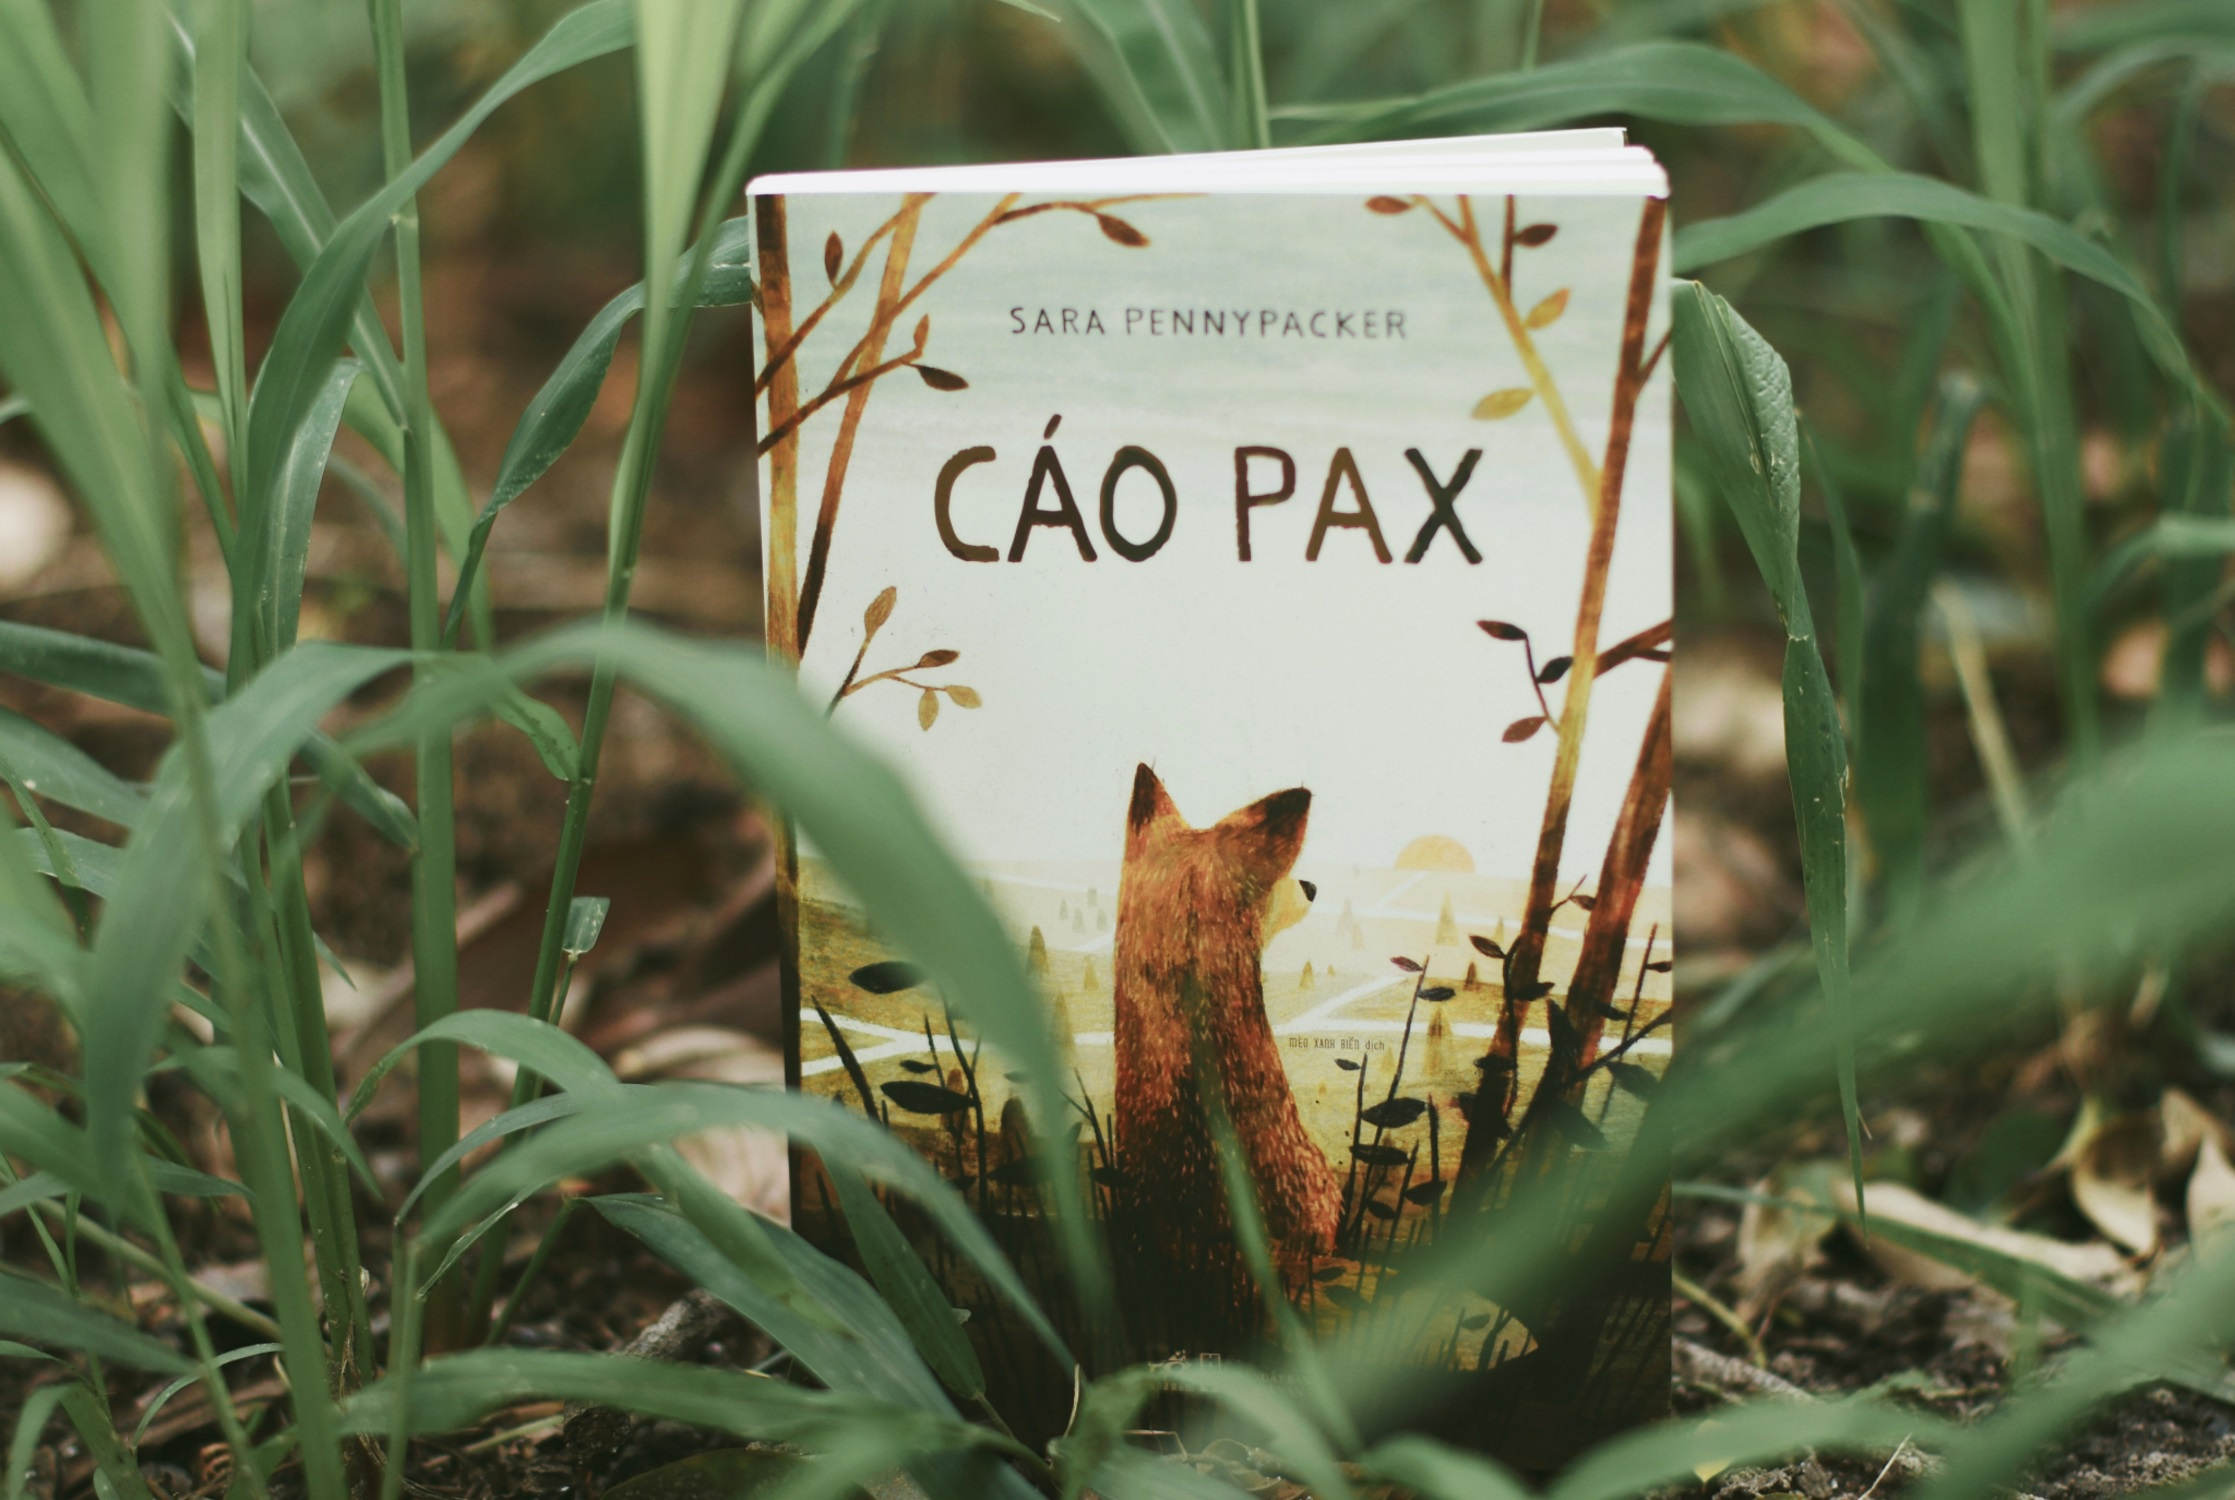 Review sach Cao Pax anh 1